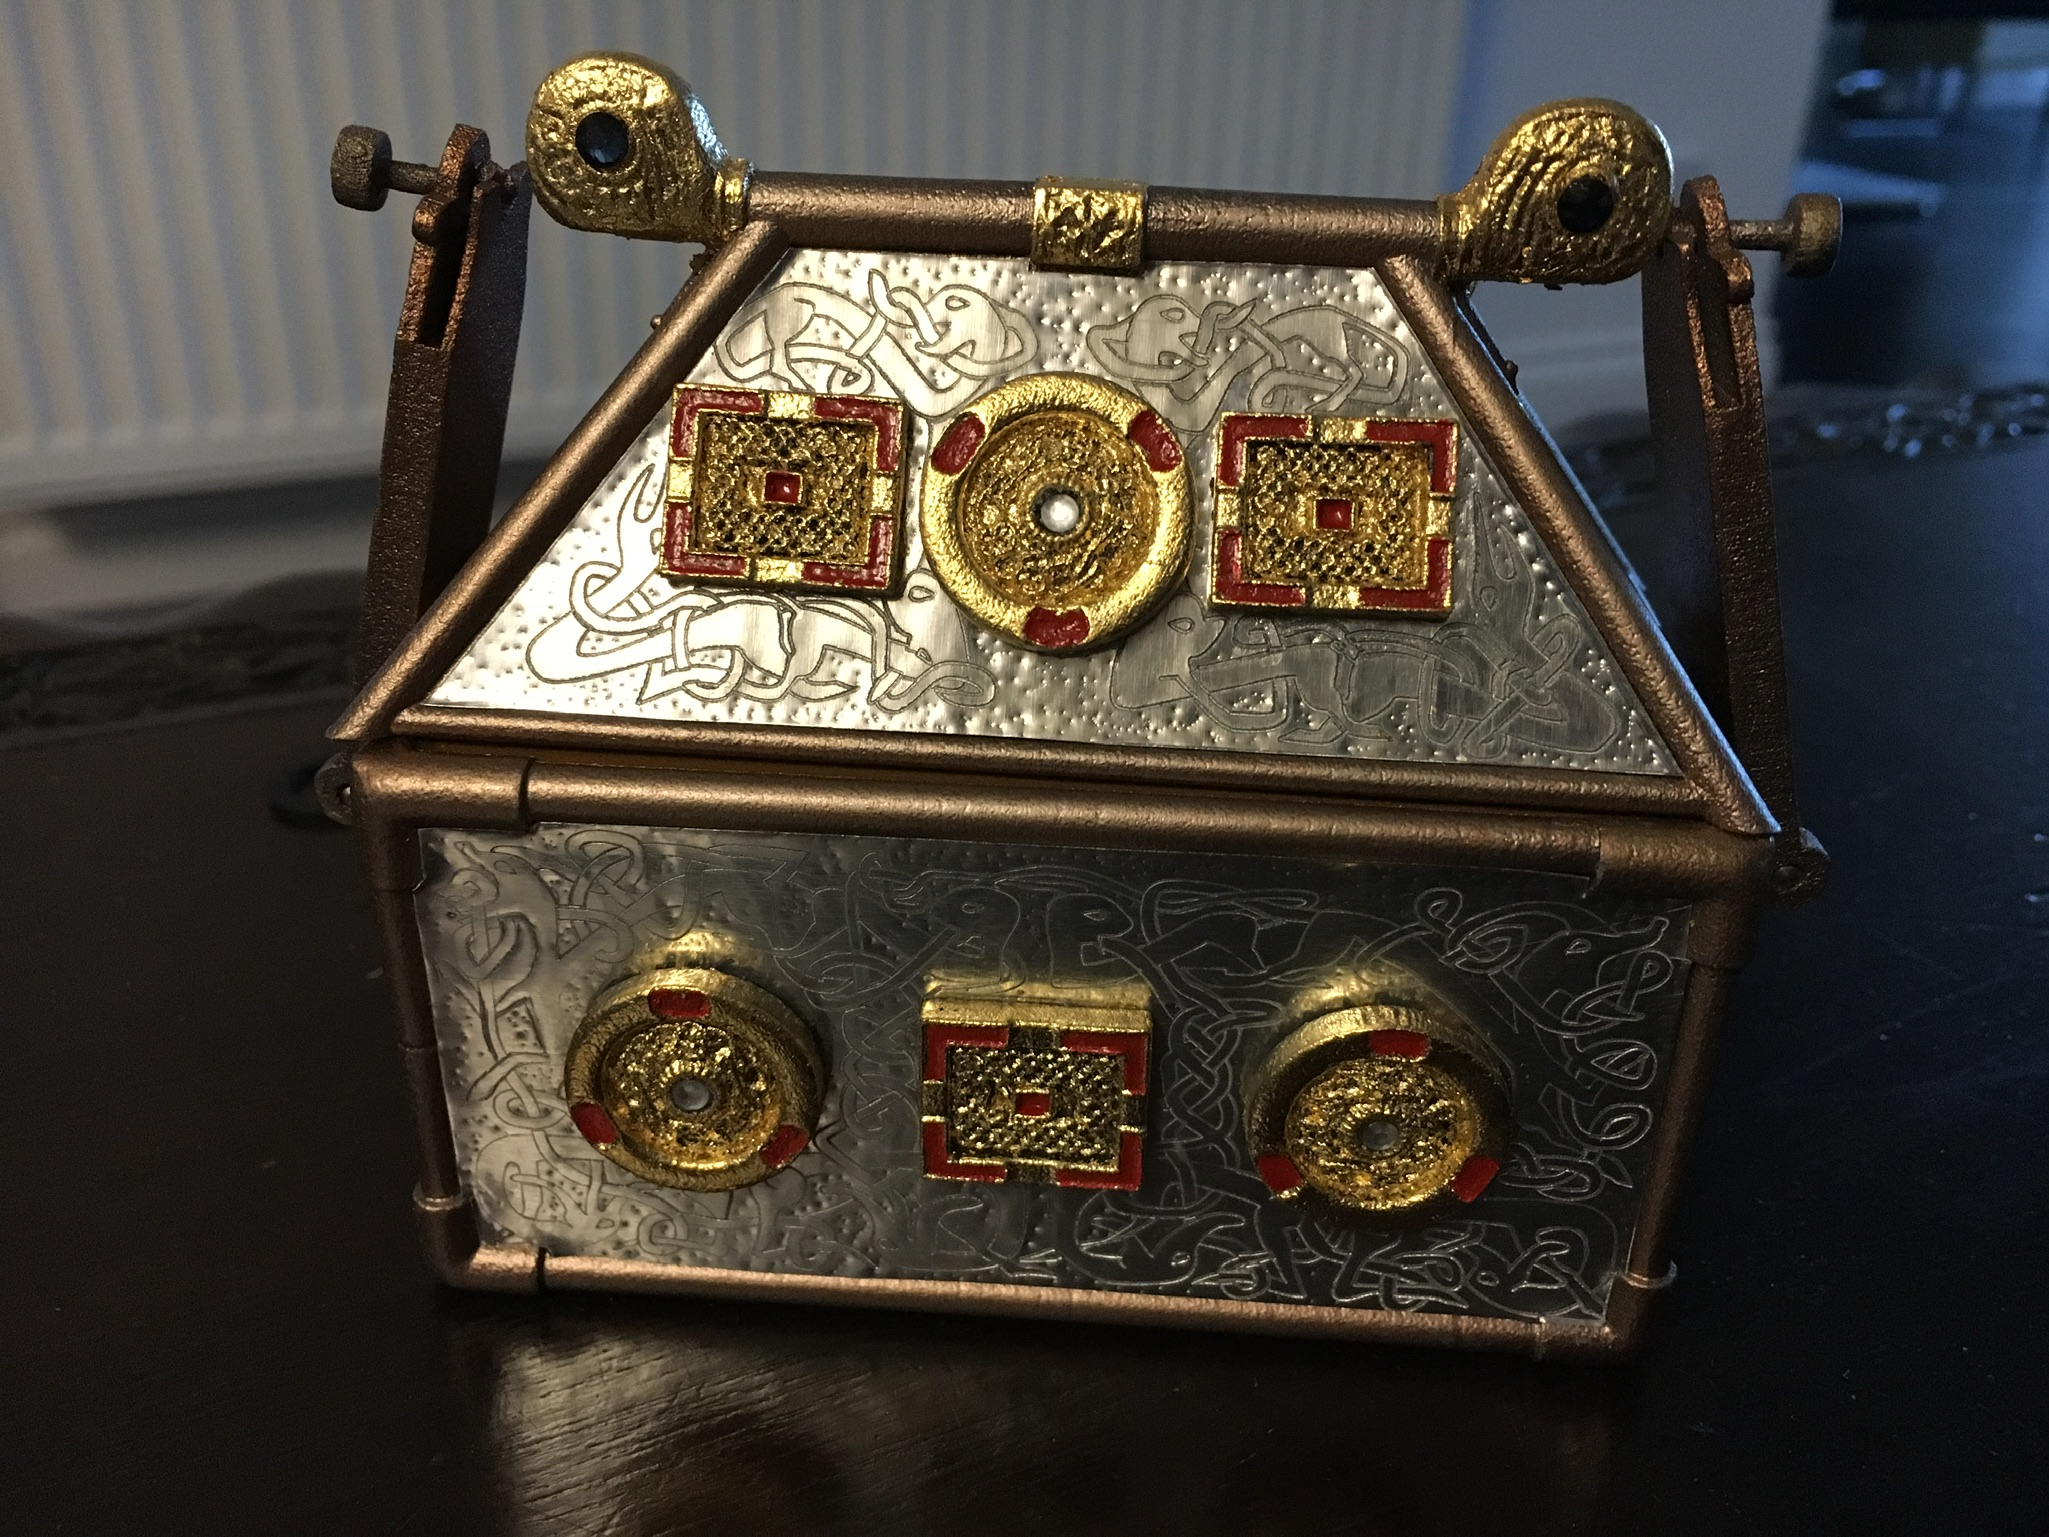 Replica Monymusk Reliquary light reflections